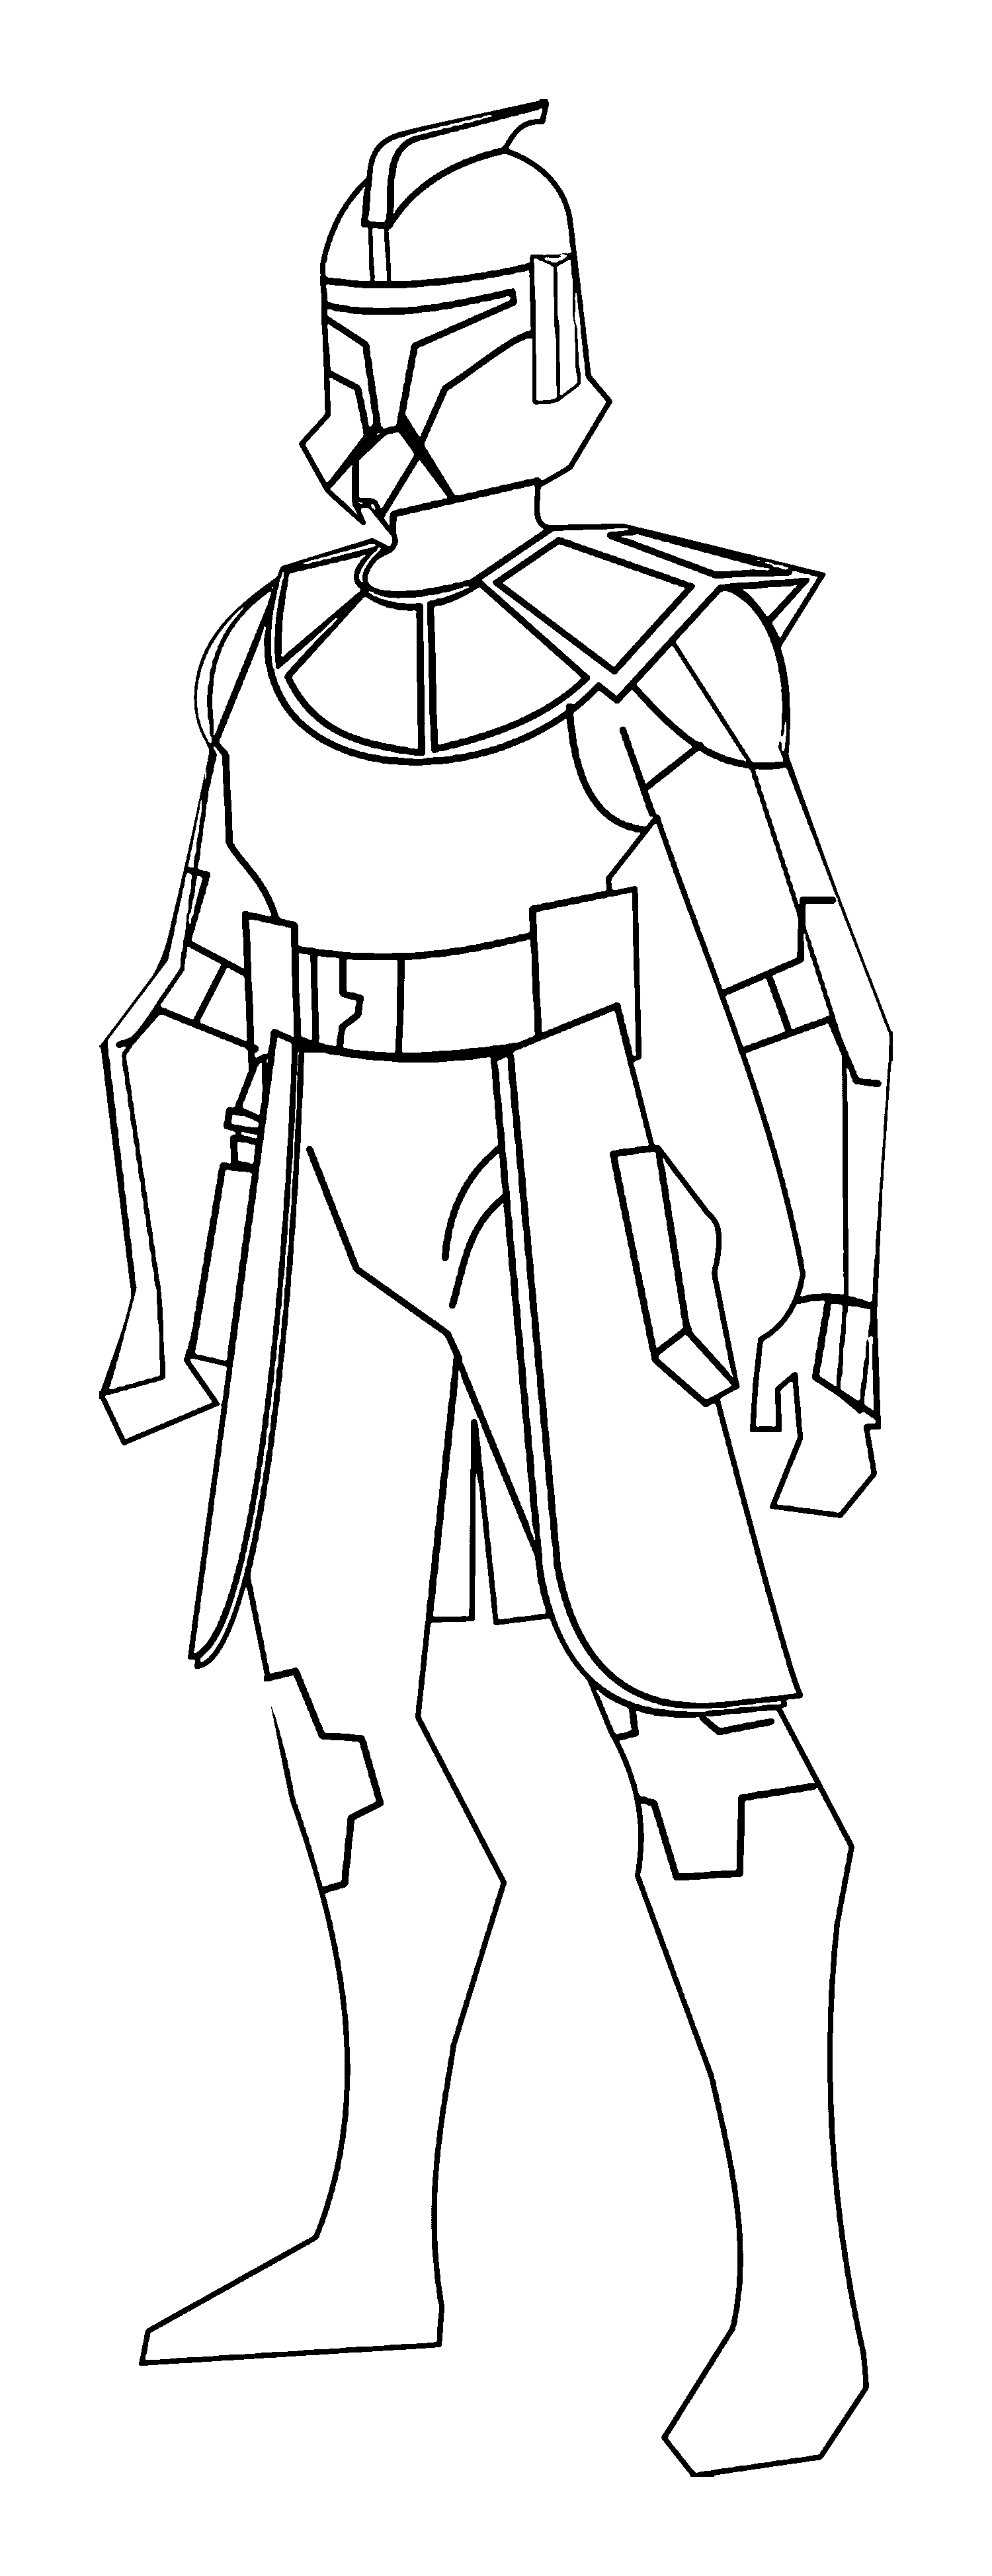 clone trooper colouring pages 501st clone trooper coloring pages coloring pages trooper colouring clone pages